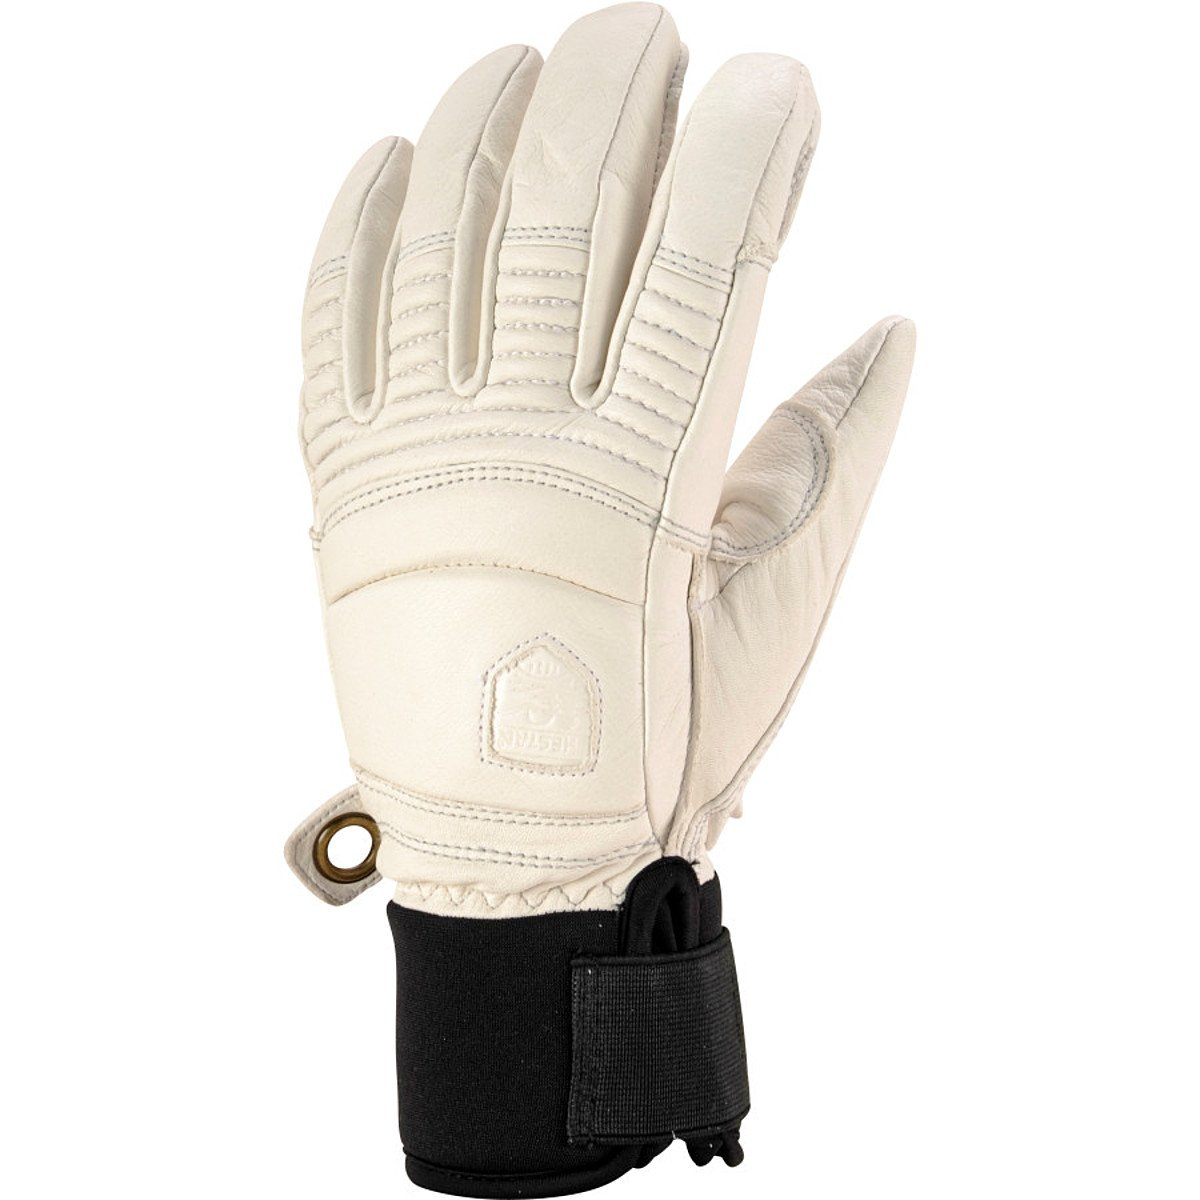 Hestra Gloves 31470 Leather Fall Line, Offwhite - 7